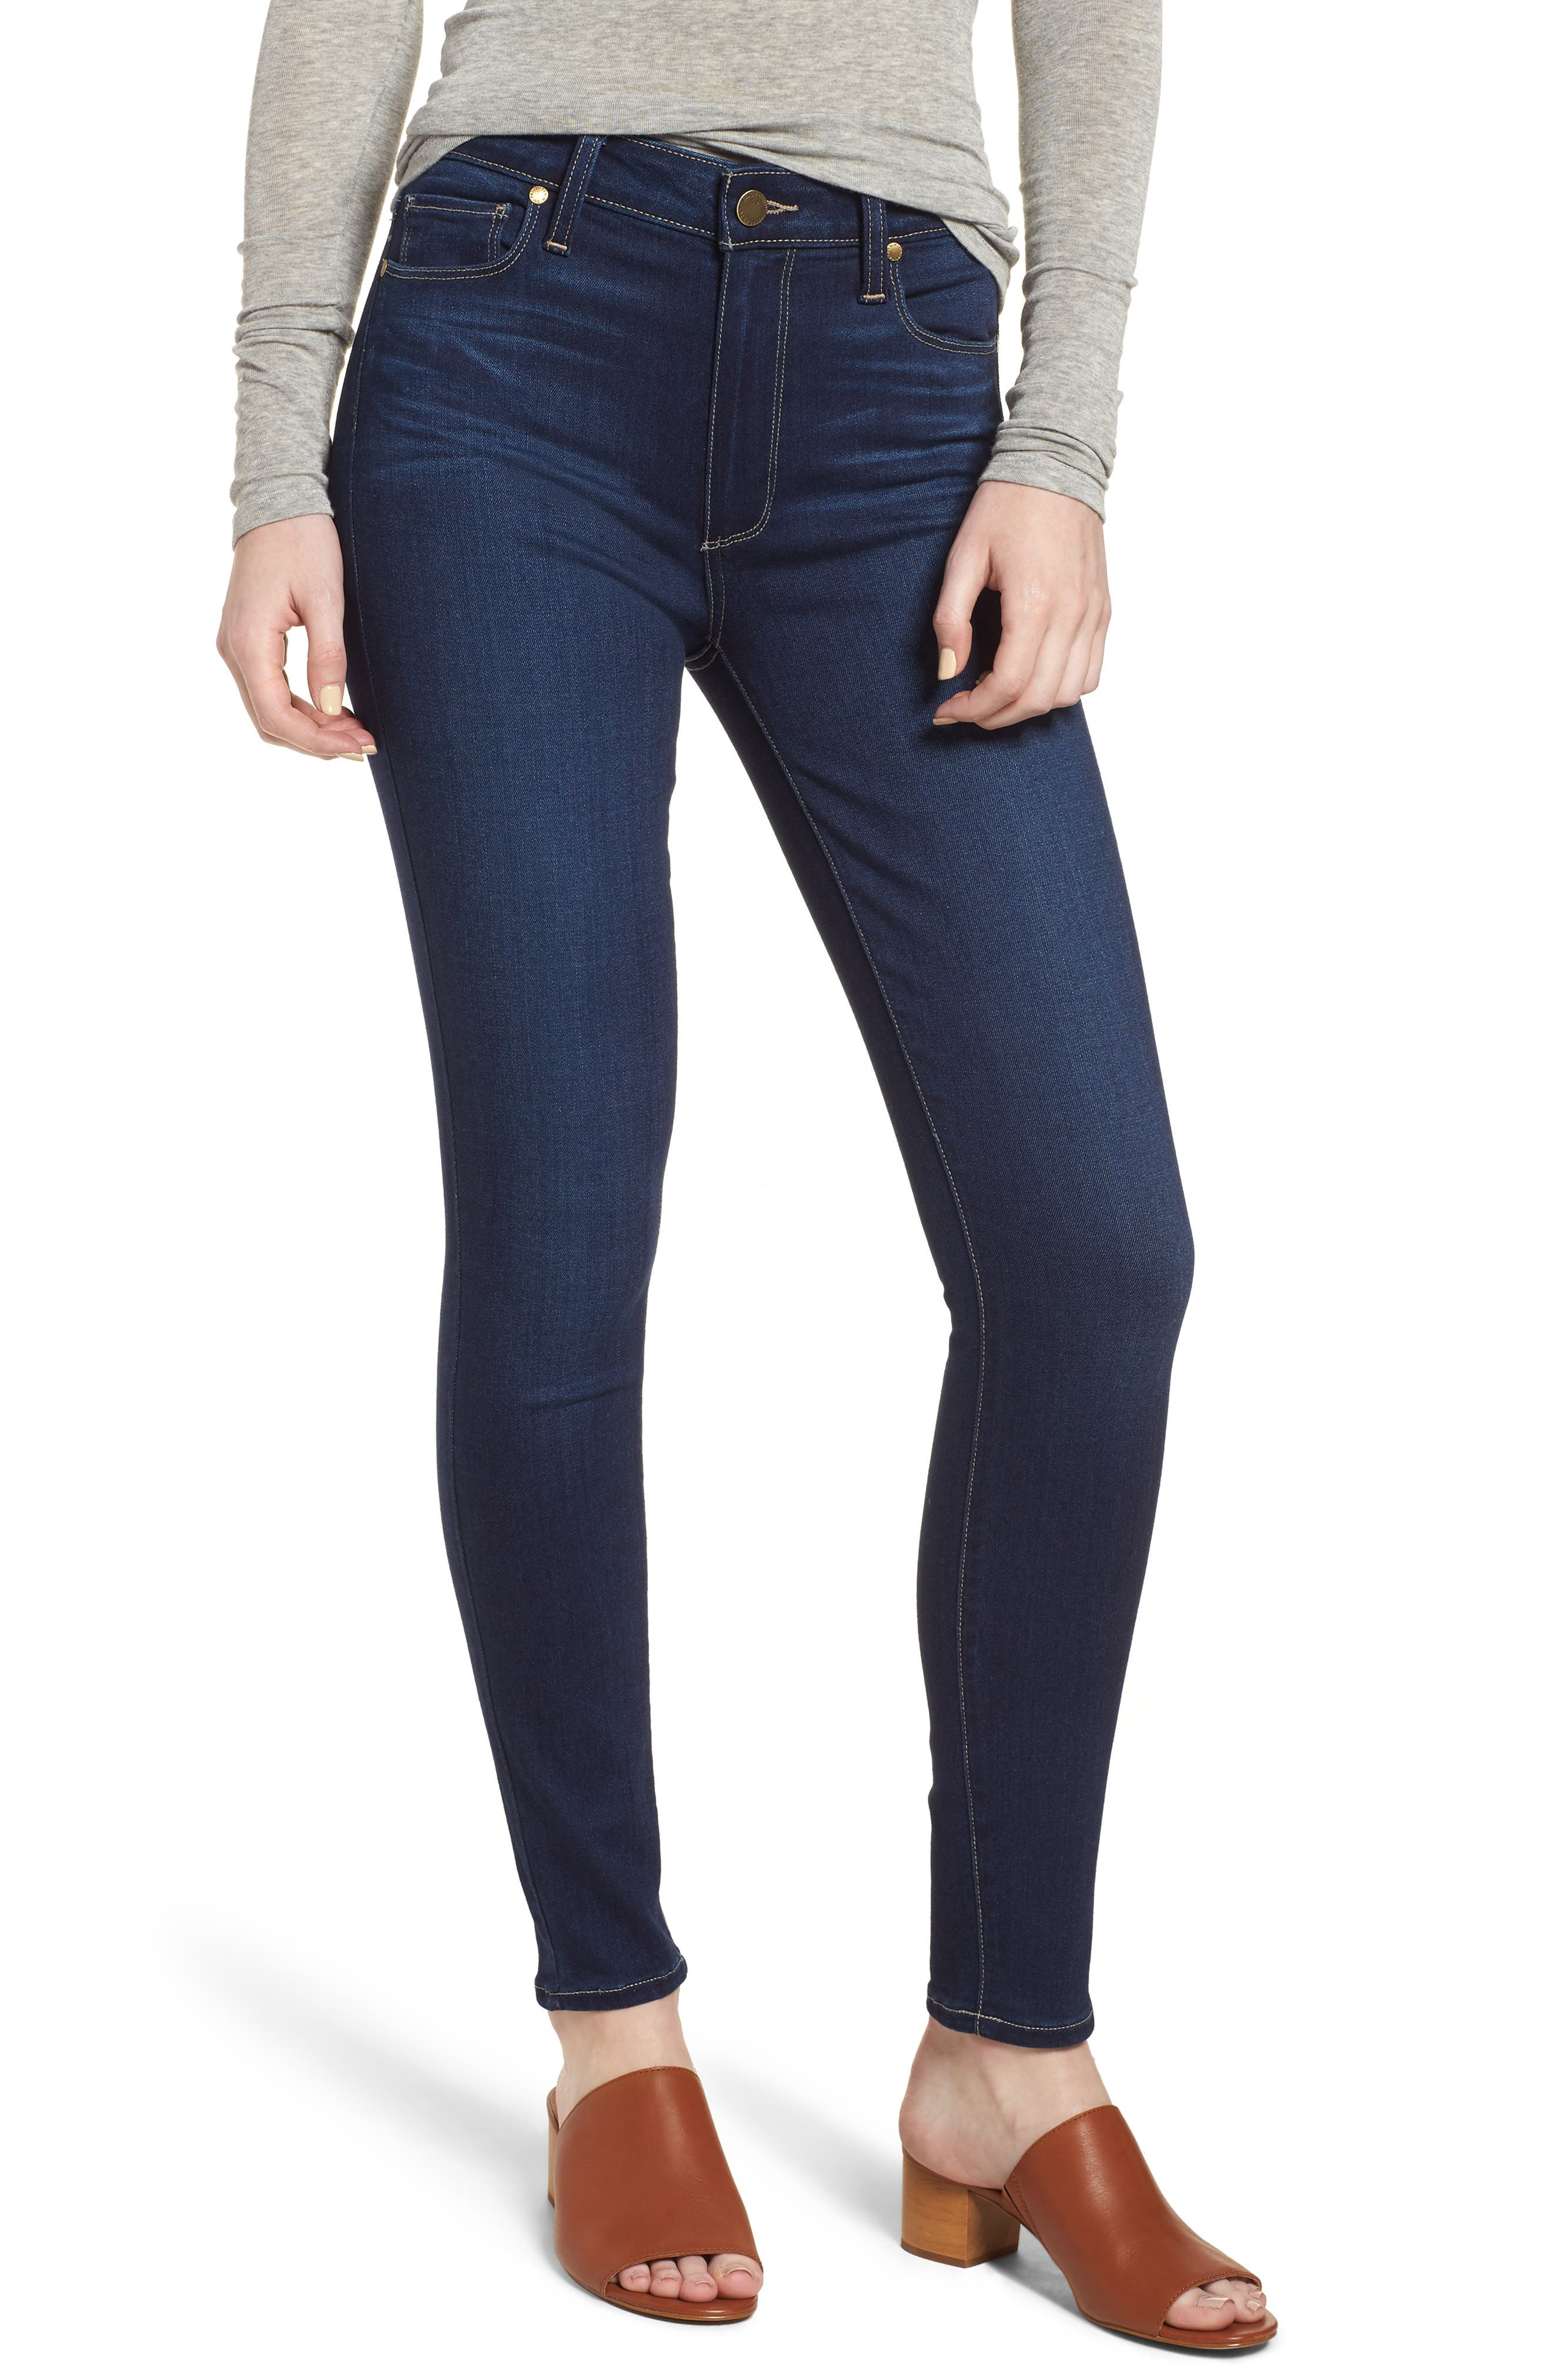 Hoxton High Waist Ankle Skinny Jeans,                         Main,                         color, Calani